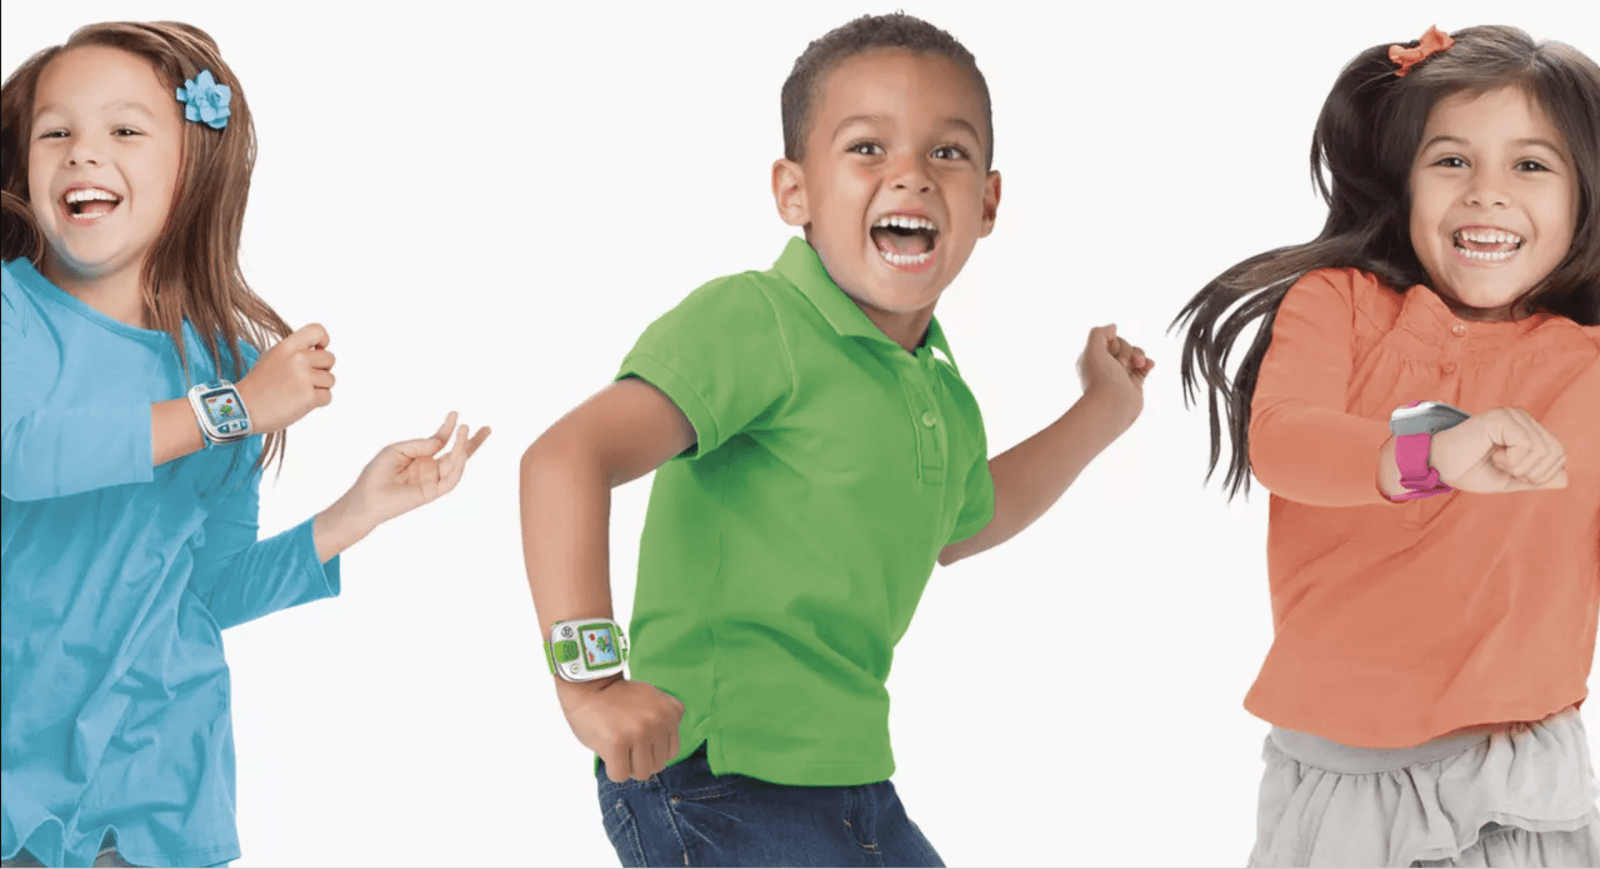 Gifting Fitness Wearables to Kids